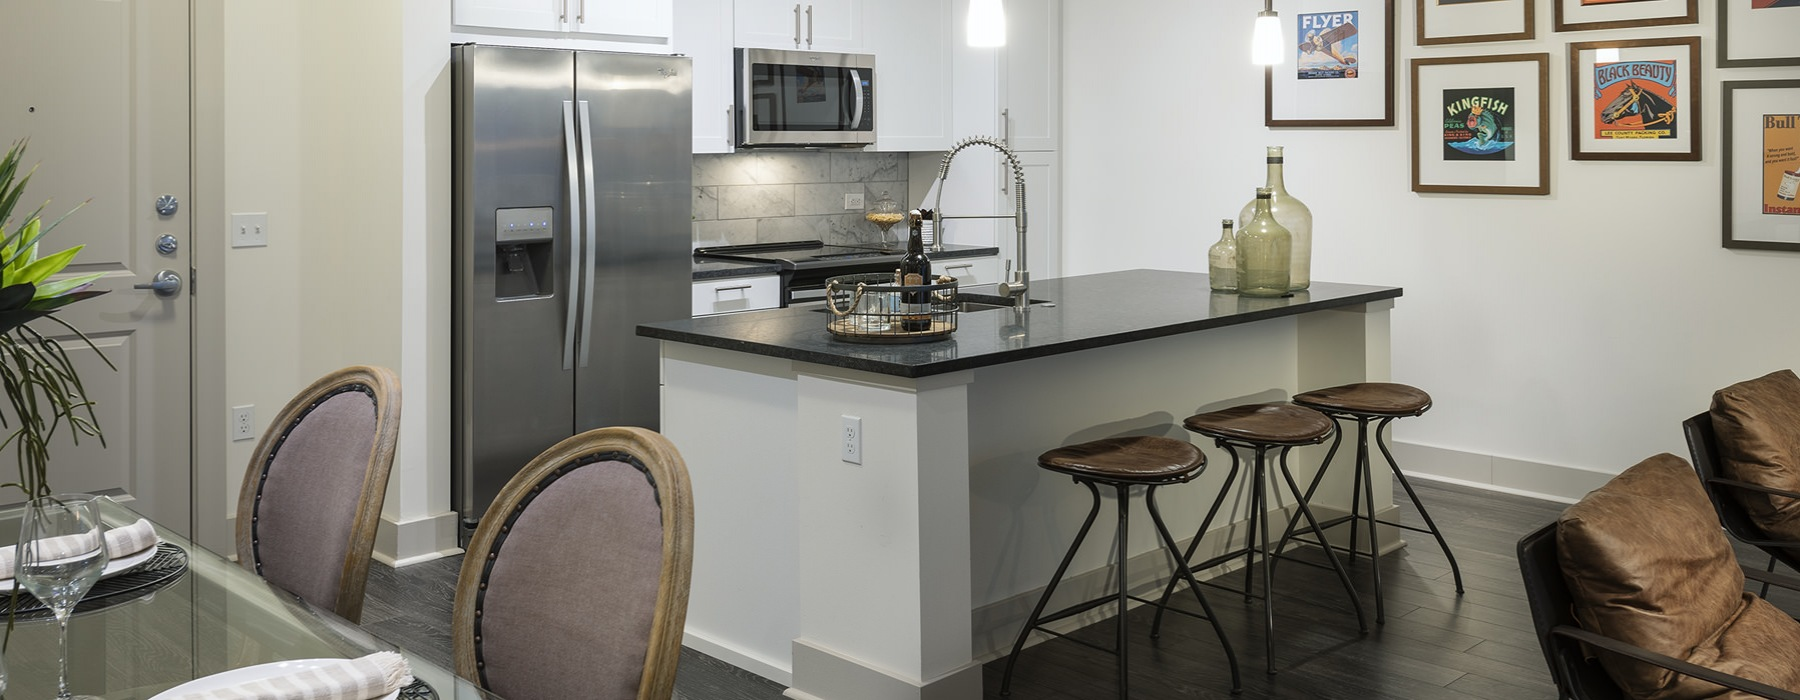 Well-lit kitchen with ample counter space